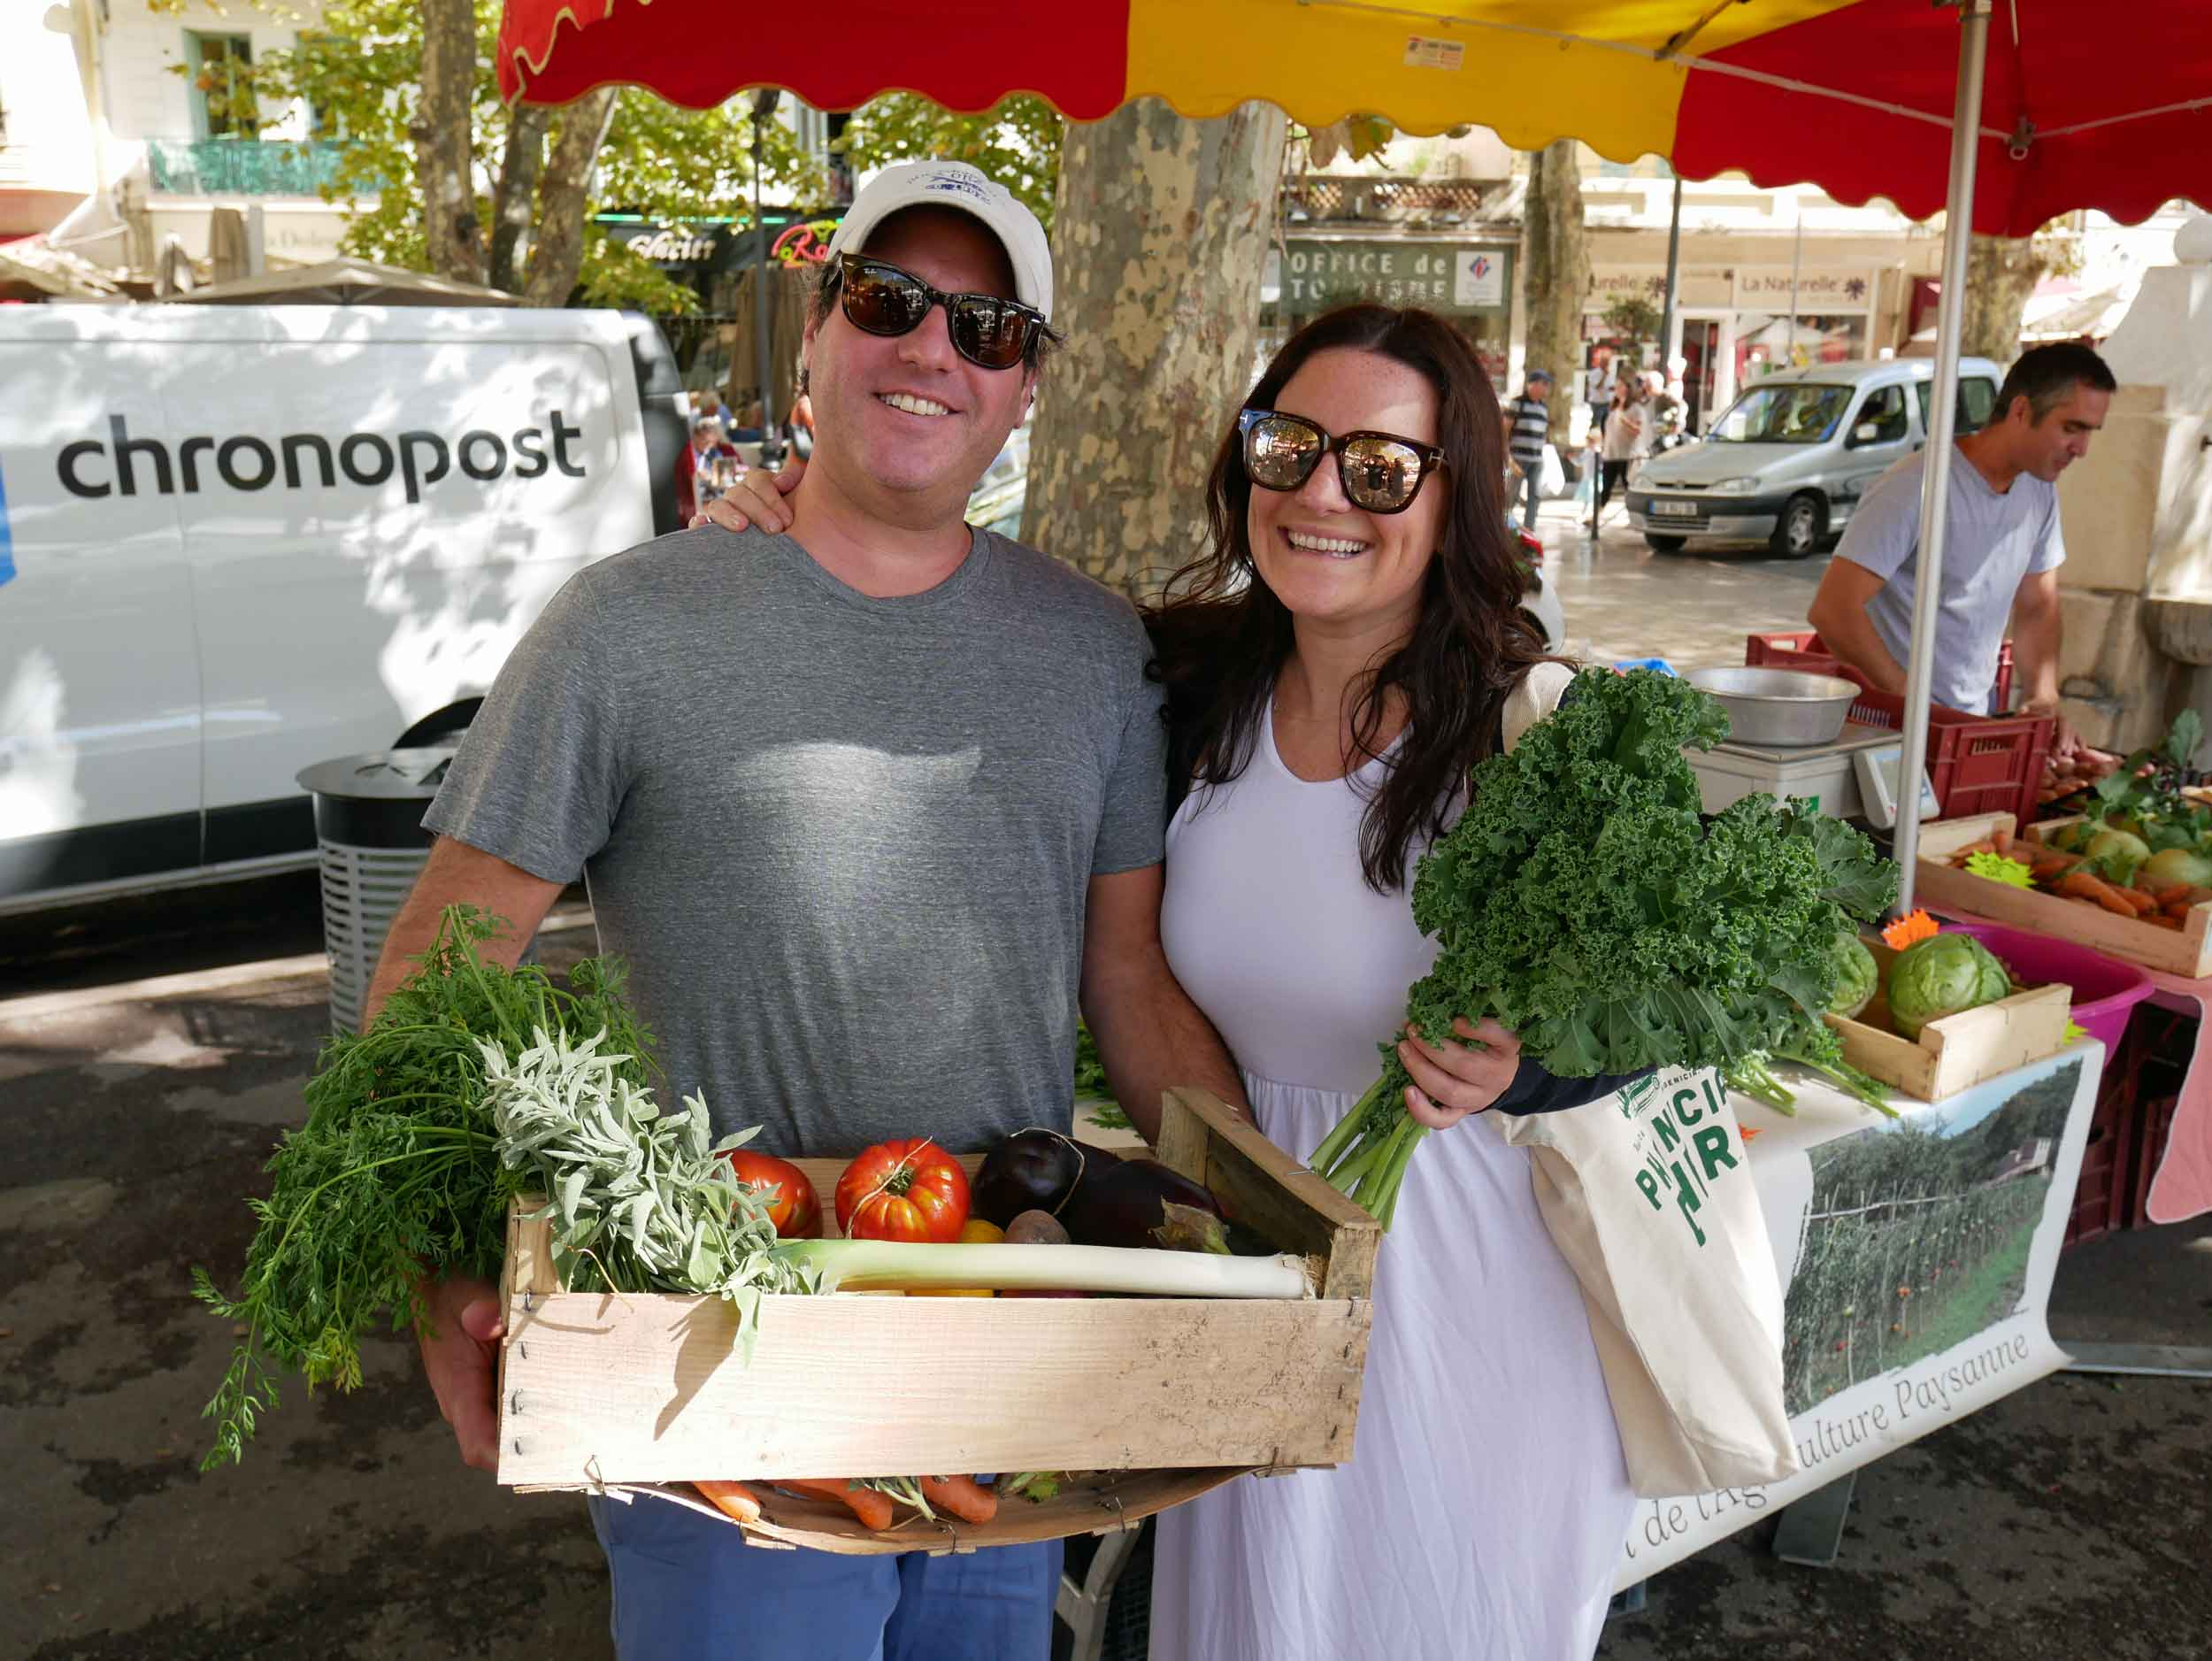 Our friends Leah and Mike buying provisions at Vence's farmers' market for our evening's feast.